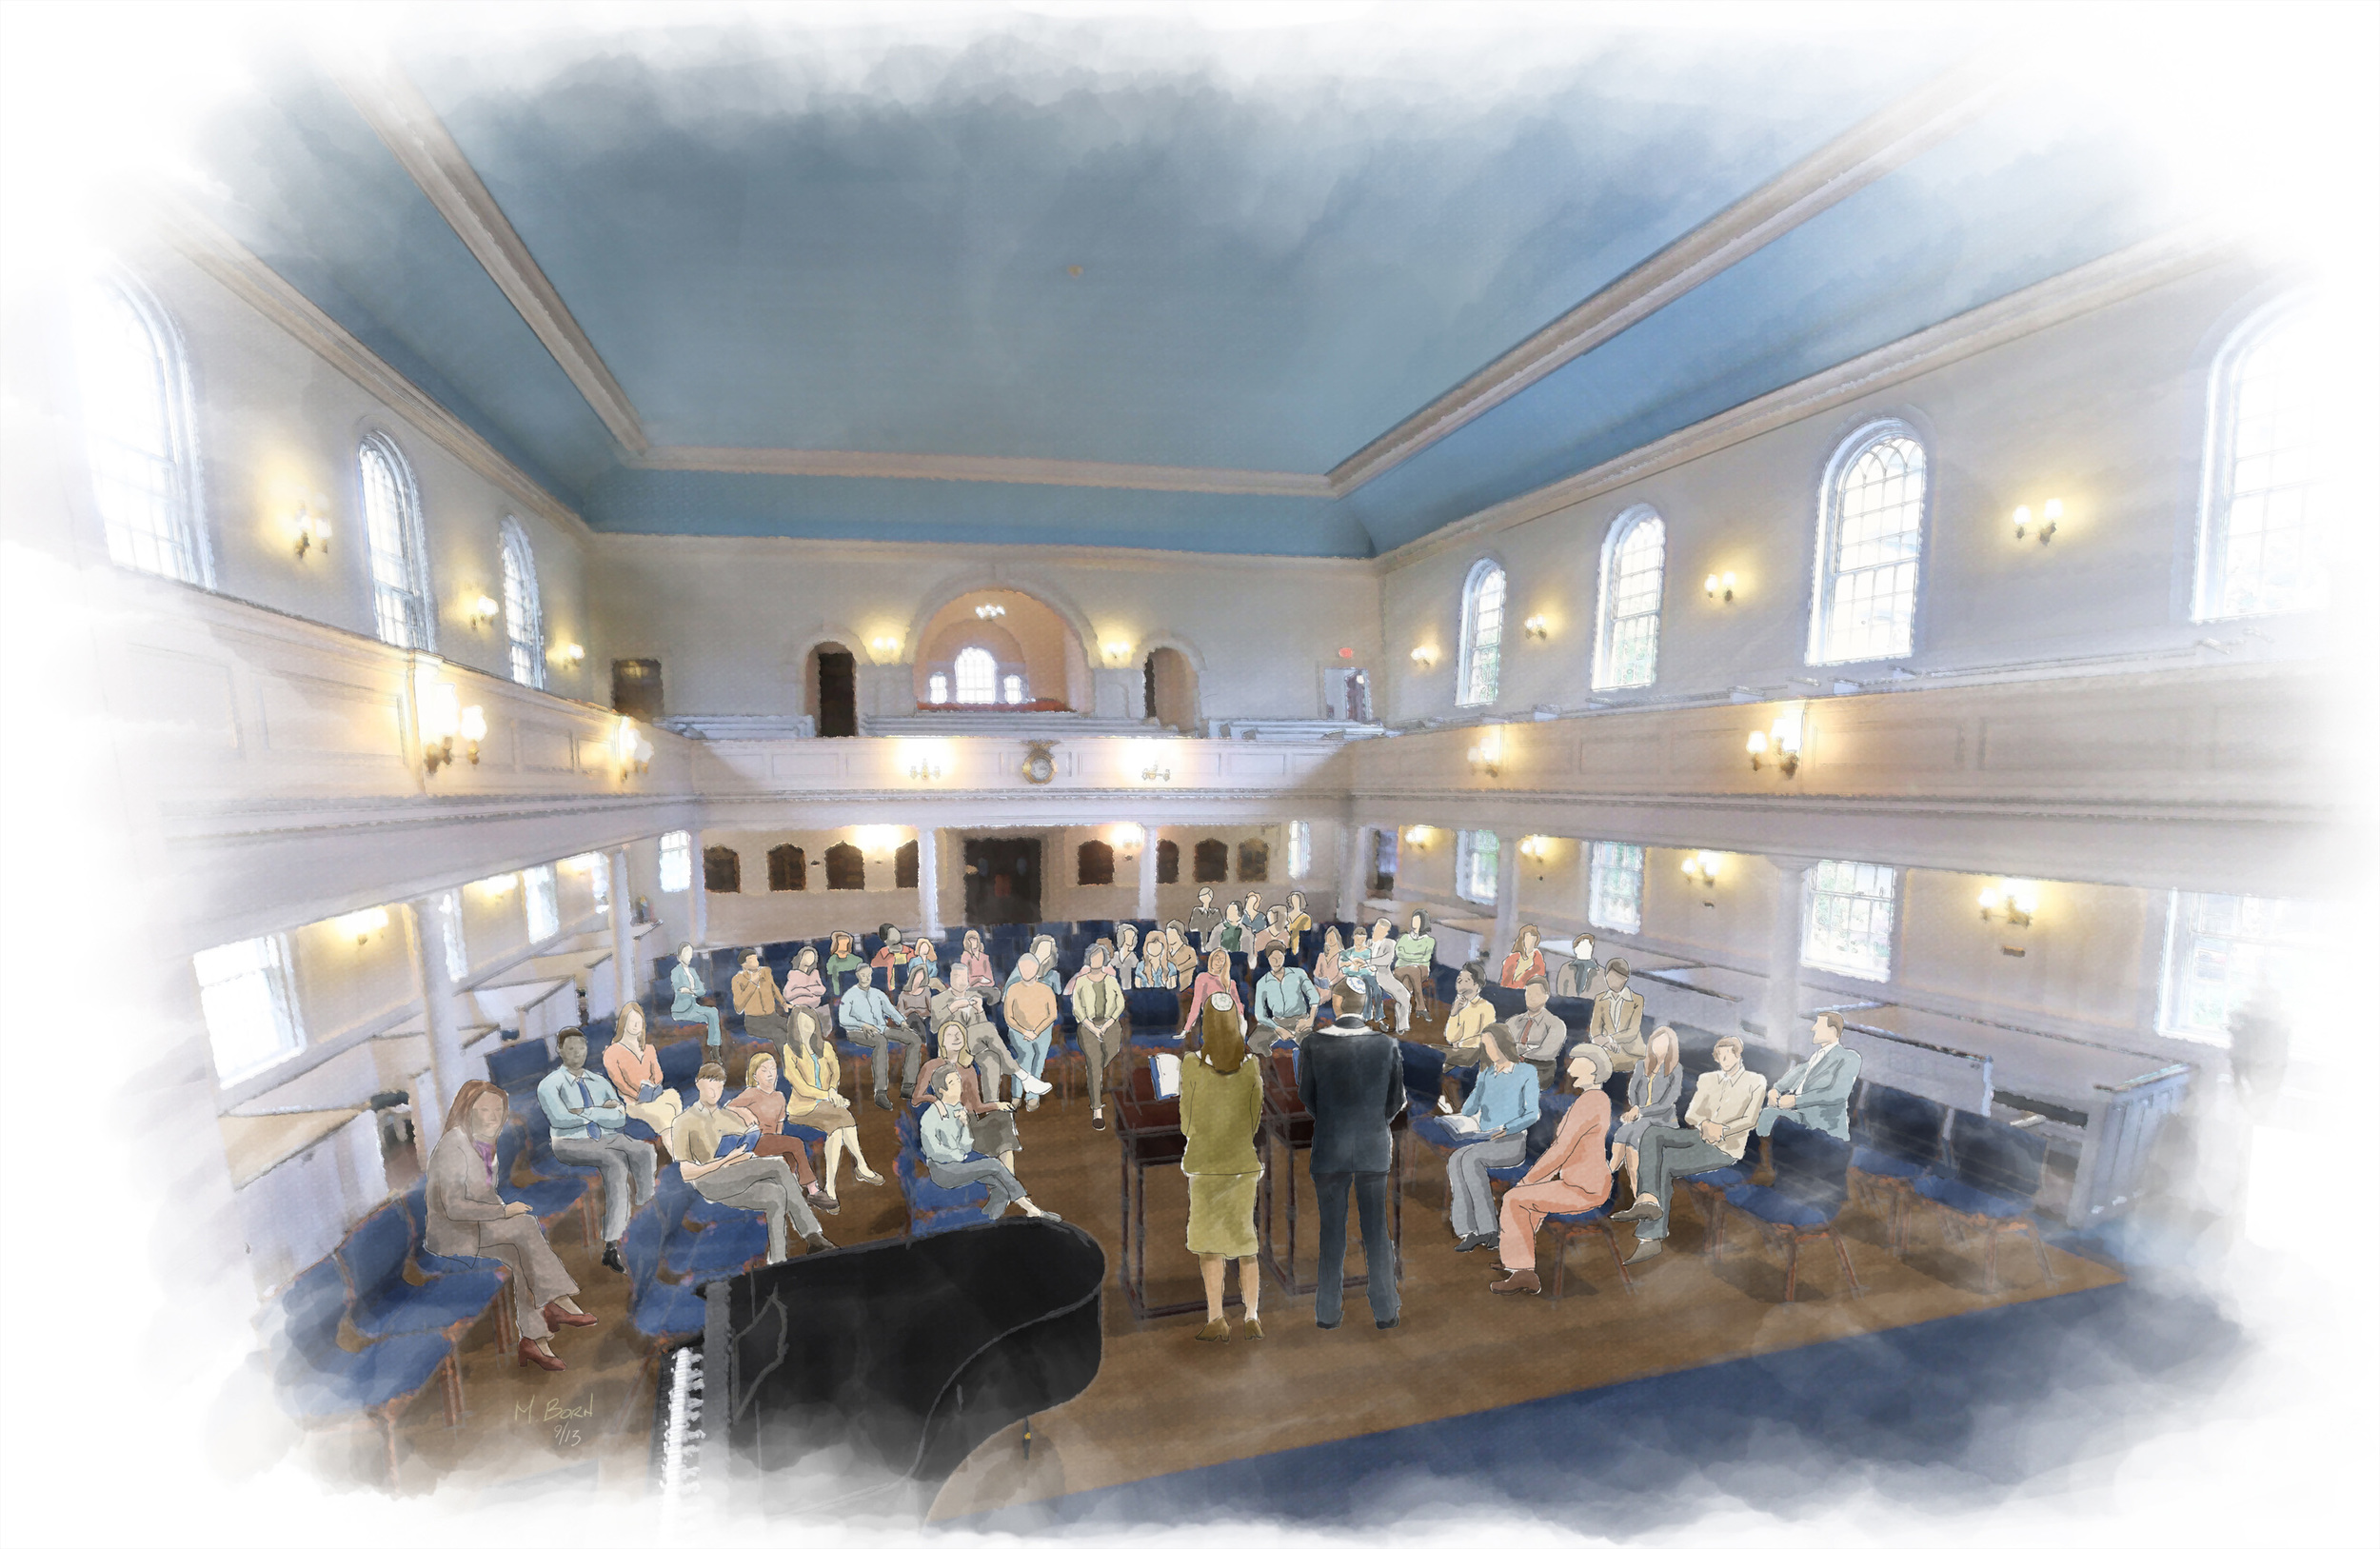 BornIllustration-Temple Sinai-View From Bema.jpg